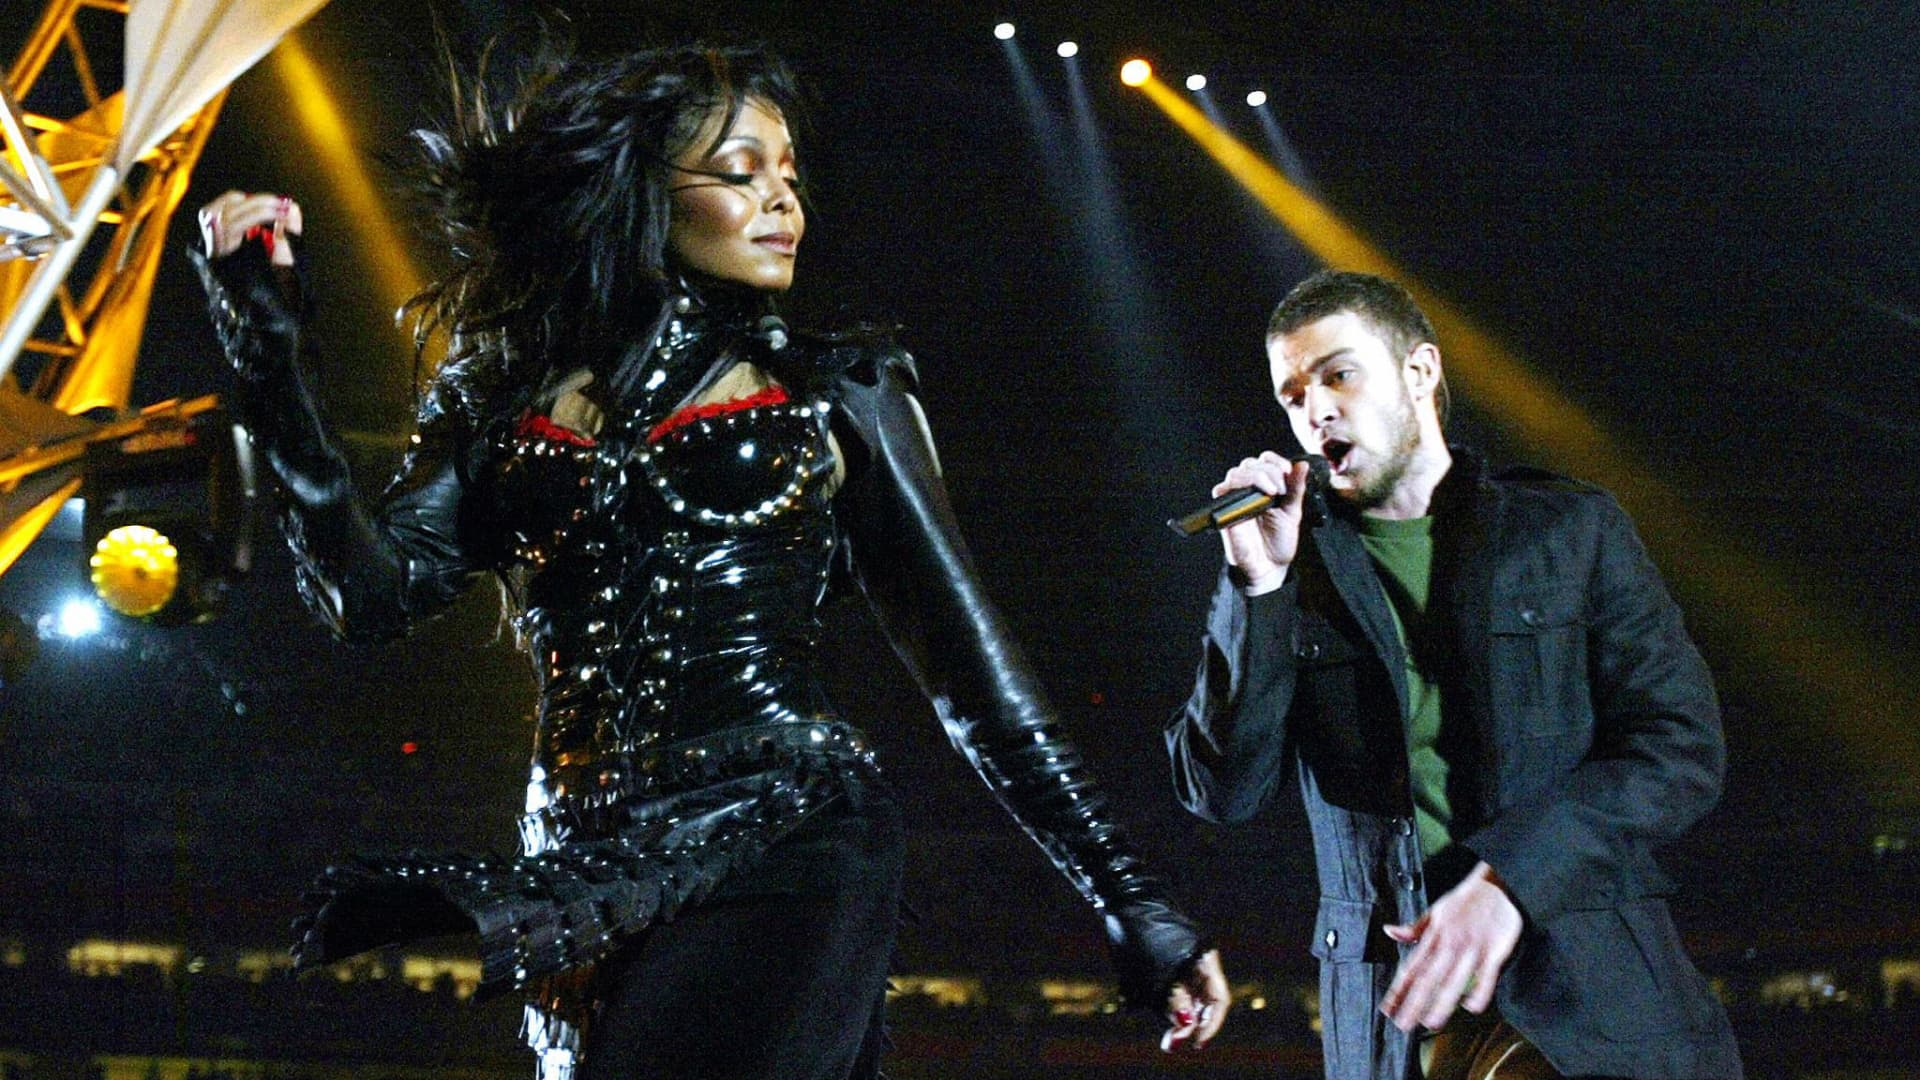 Janet Jackson and Justin Timberlake perform at half-time at Super Bowl XXXVIII at Reliant Stadium, 01 February 2004 in Houston.